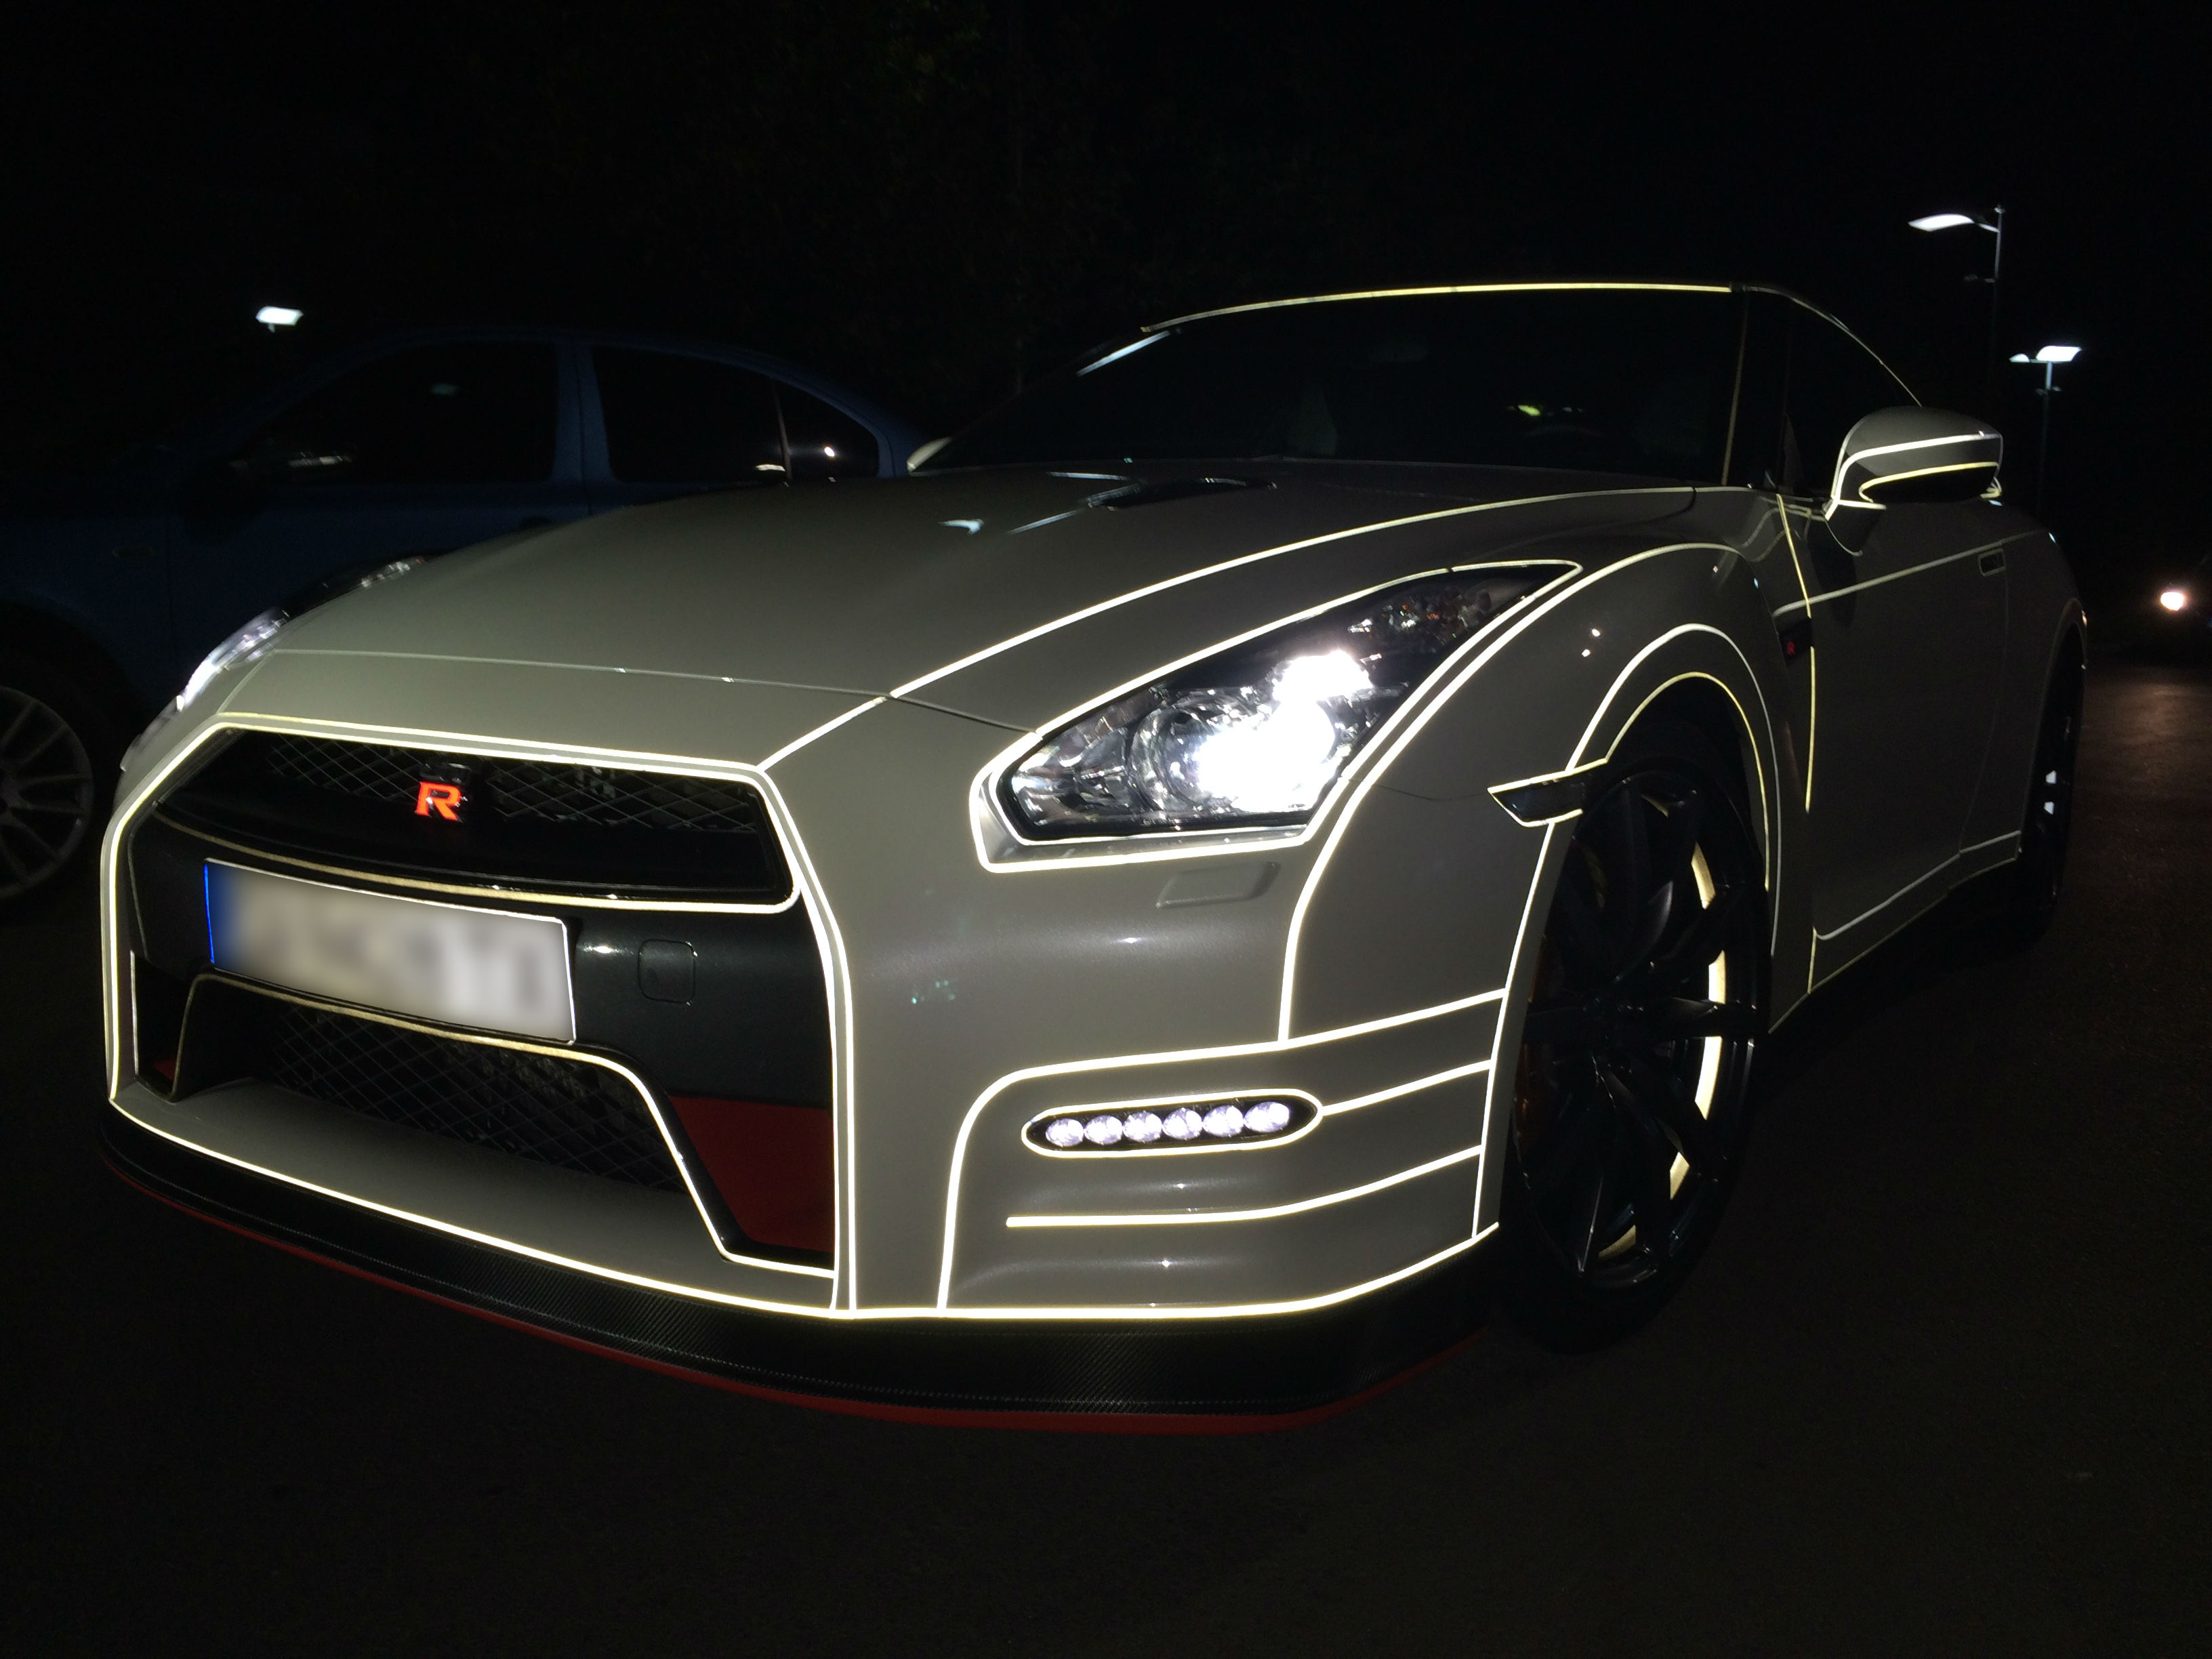 The Tron Project On Nissan Gtr Carbon Bg